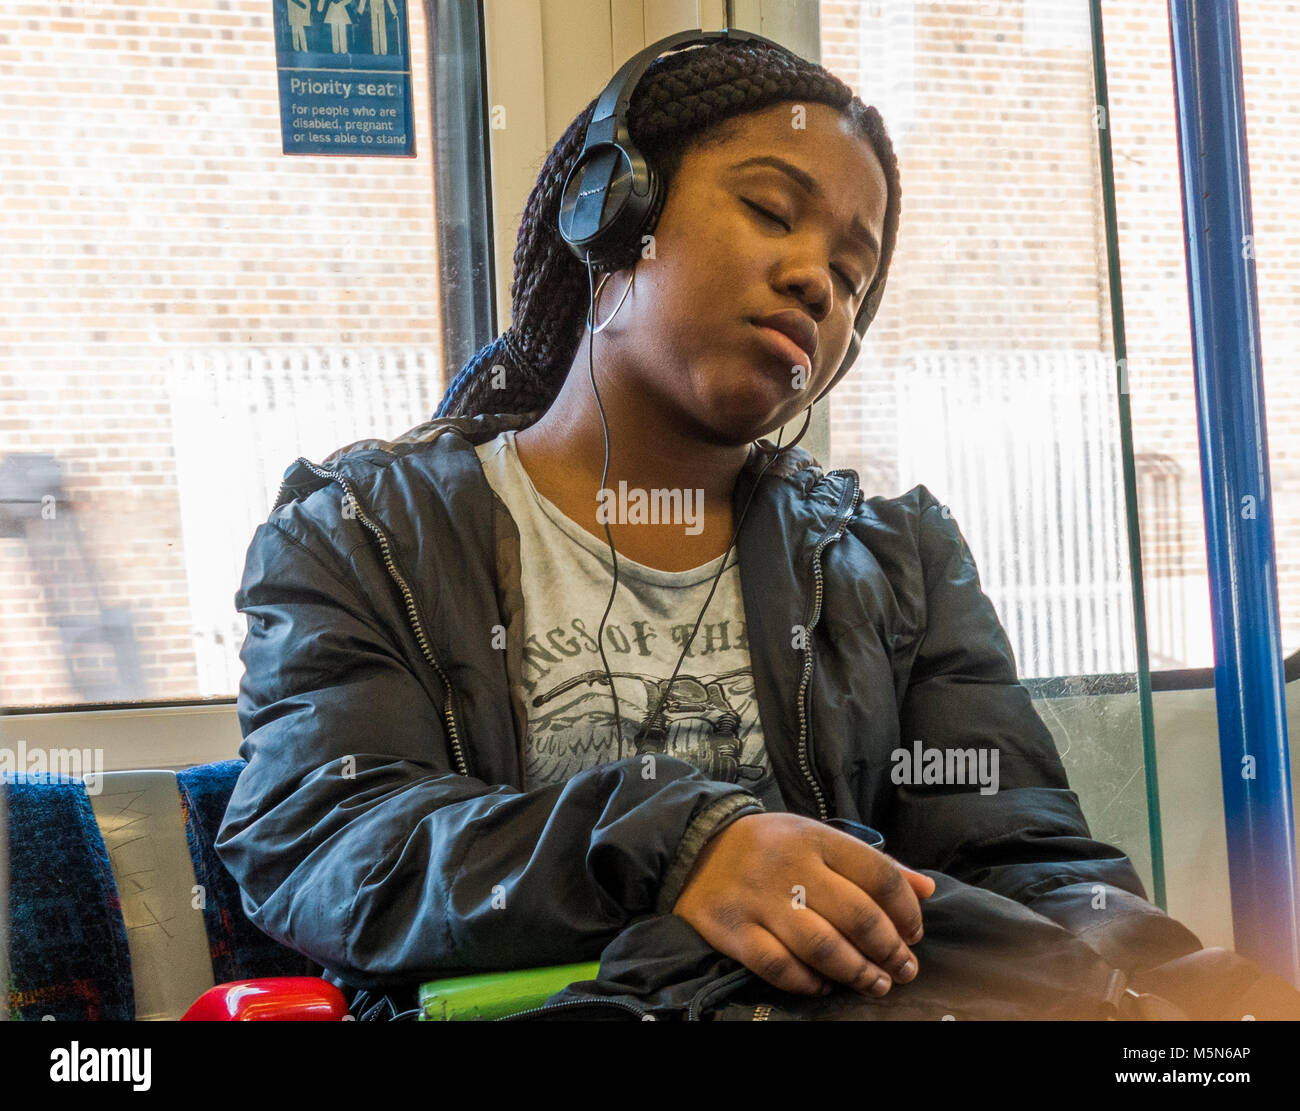 Young black woman passenger, dozing on a London Underground tube train while listening to music through headphones. - Stock Image